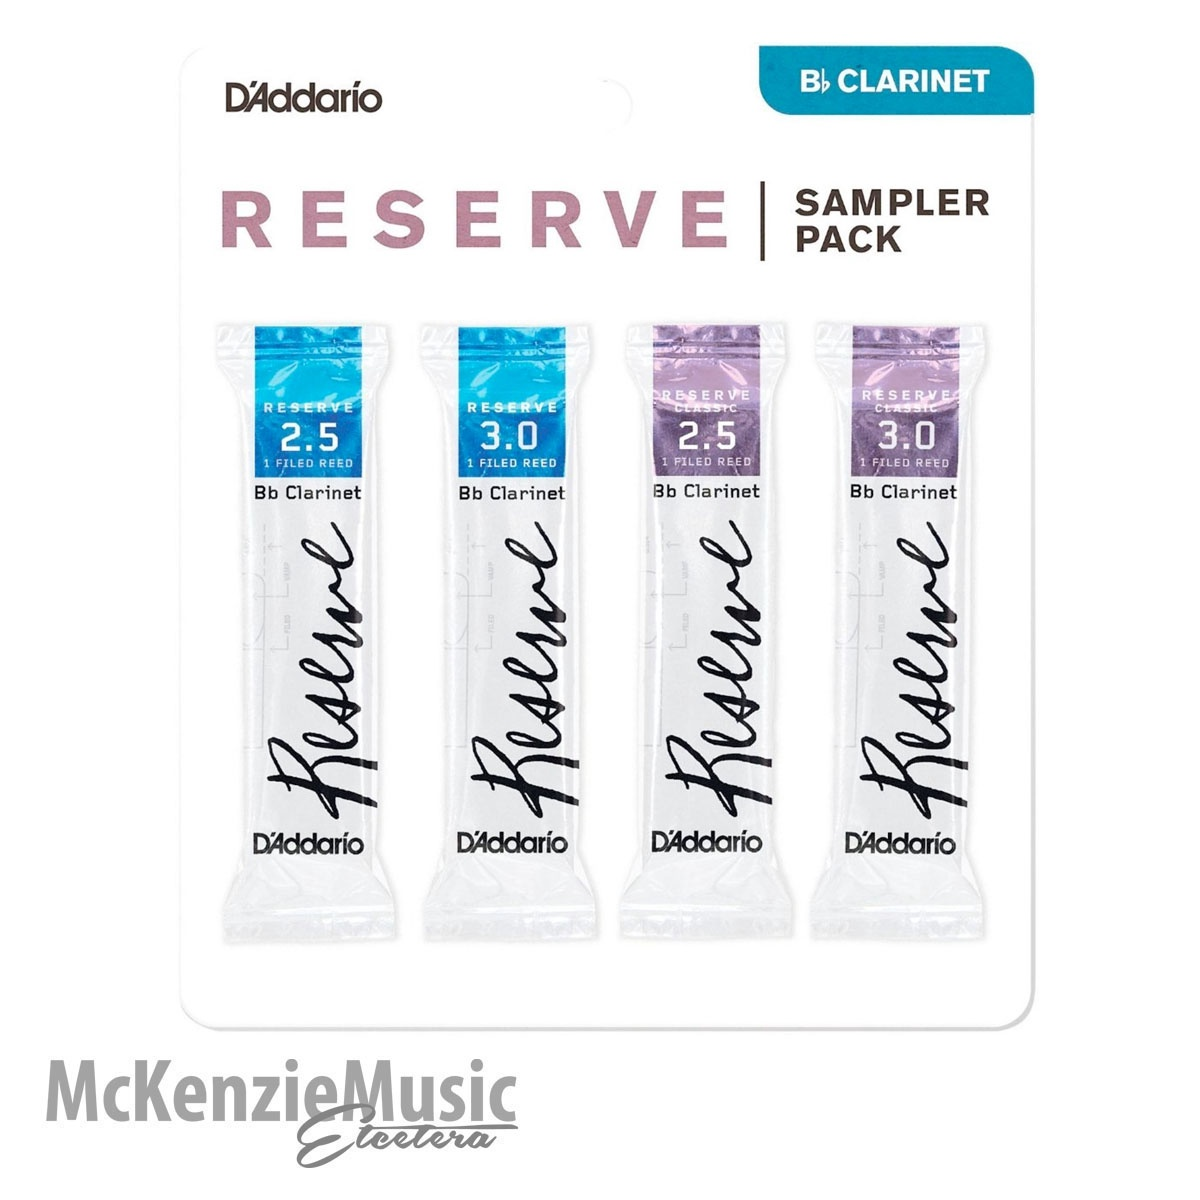 D'Addario Reserve Clarinet Sample Pack Size 2.5/3.0